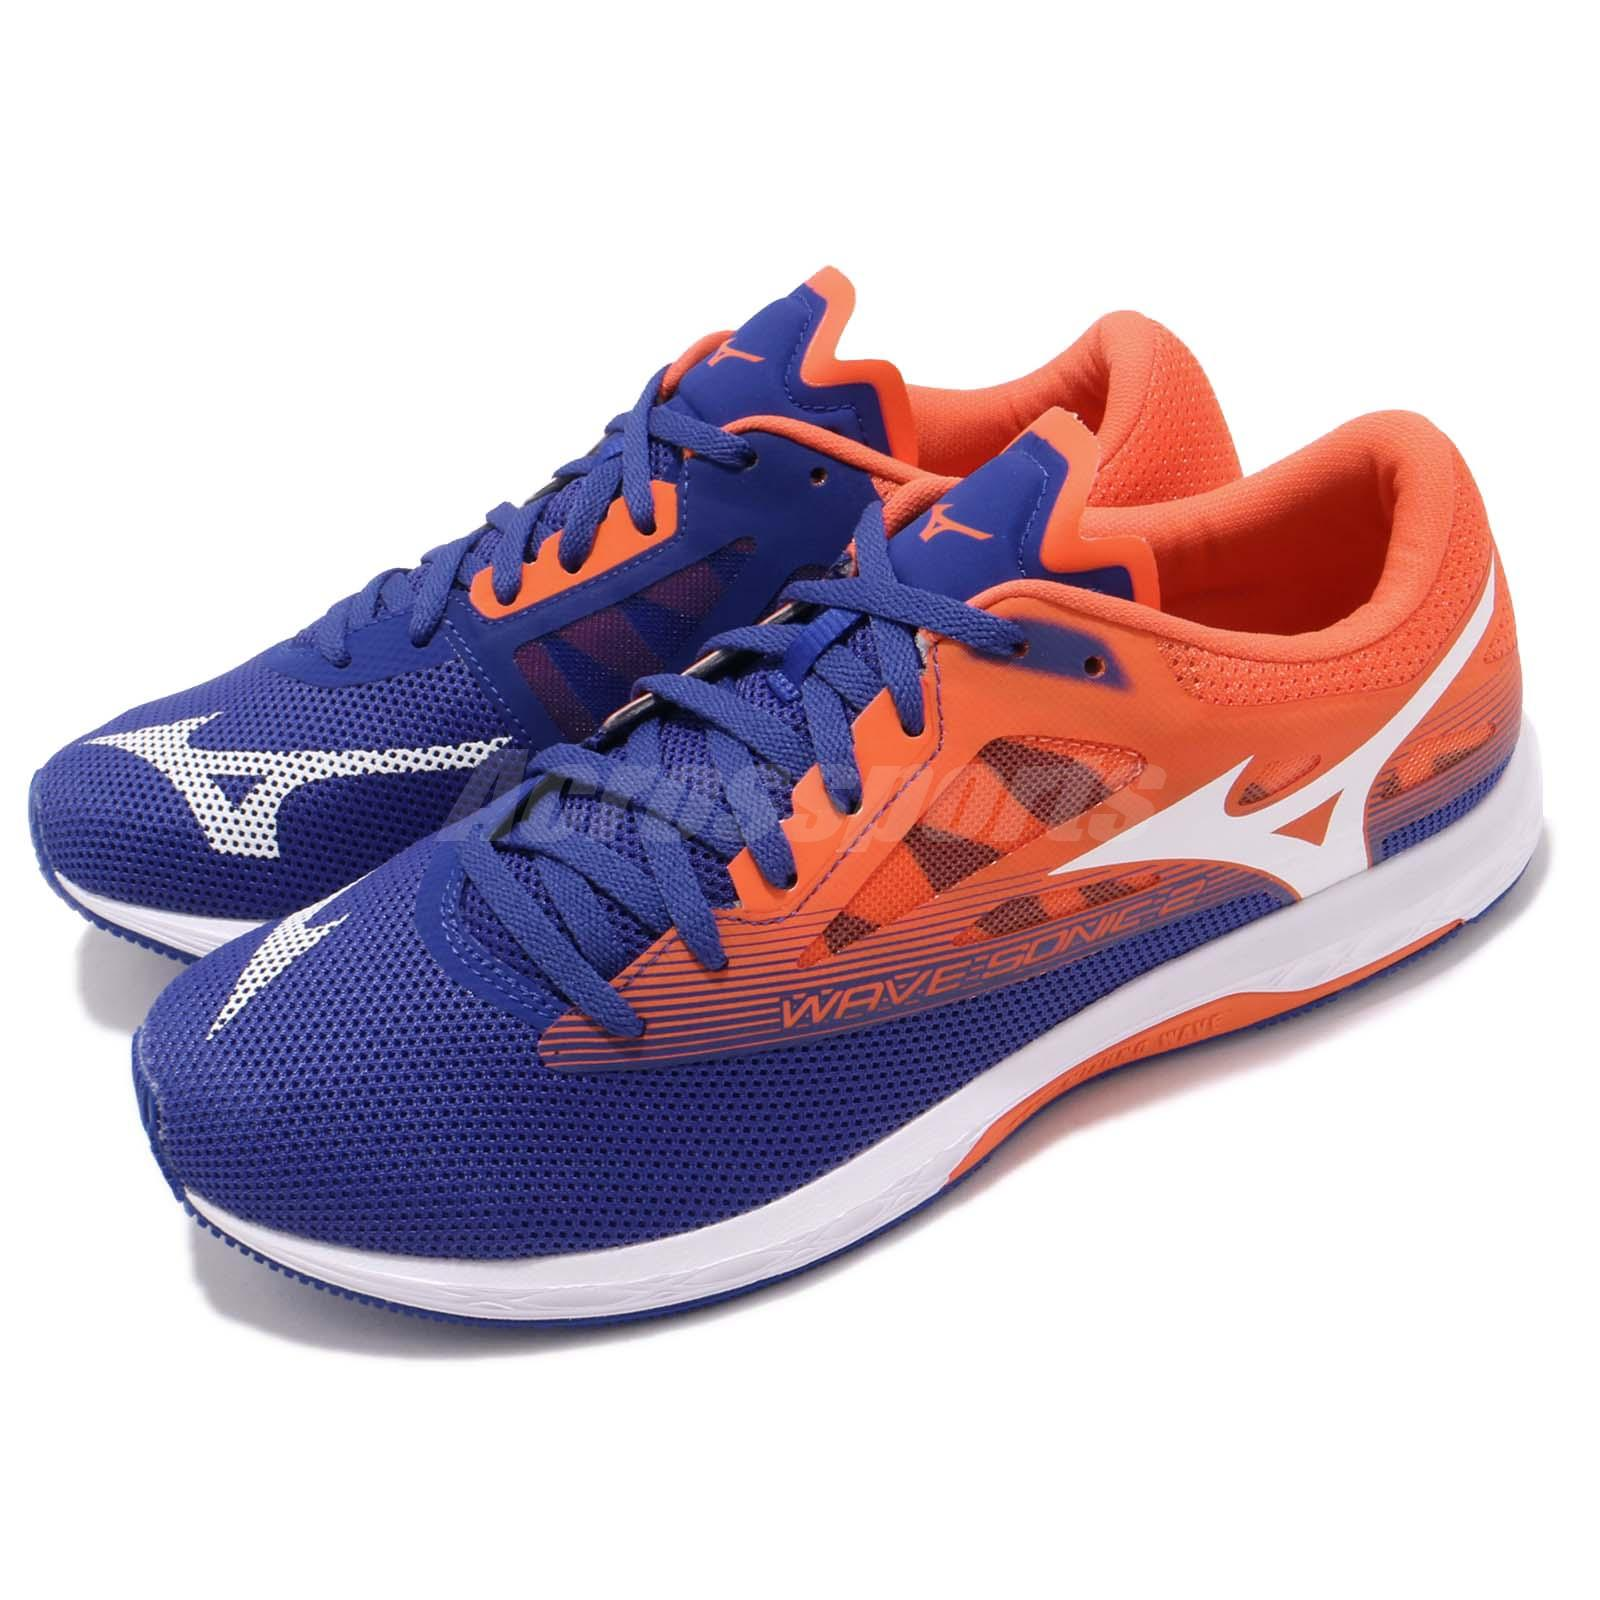 Details about Mizuno Wave Sonic 2 Blue Orange White Men Running Racing Shoes  U1GD1934-01 74446a19b